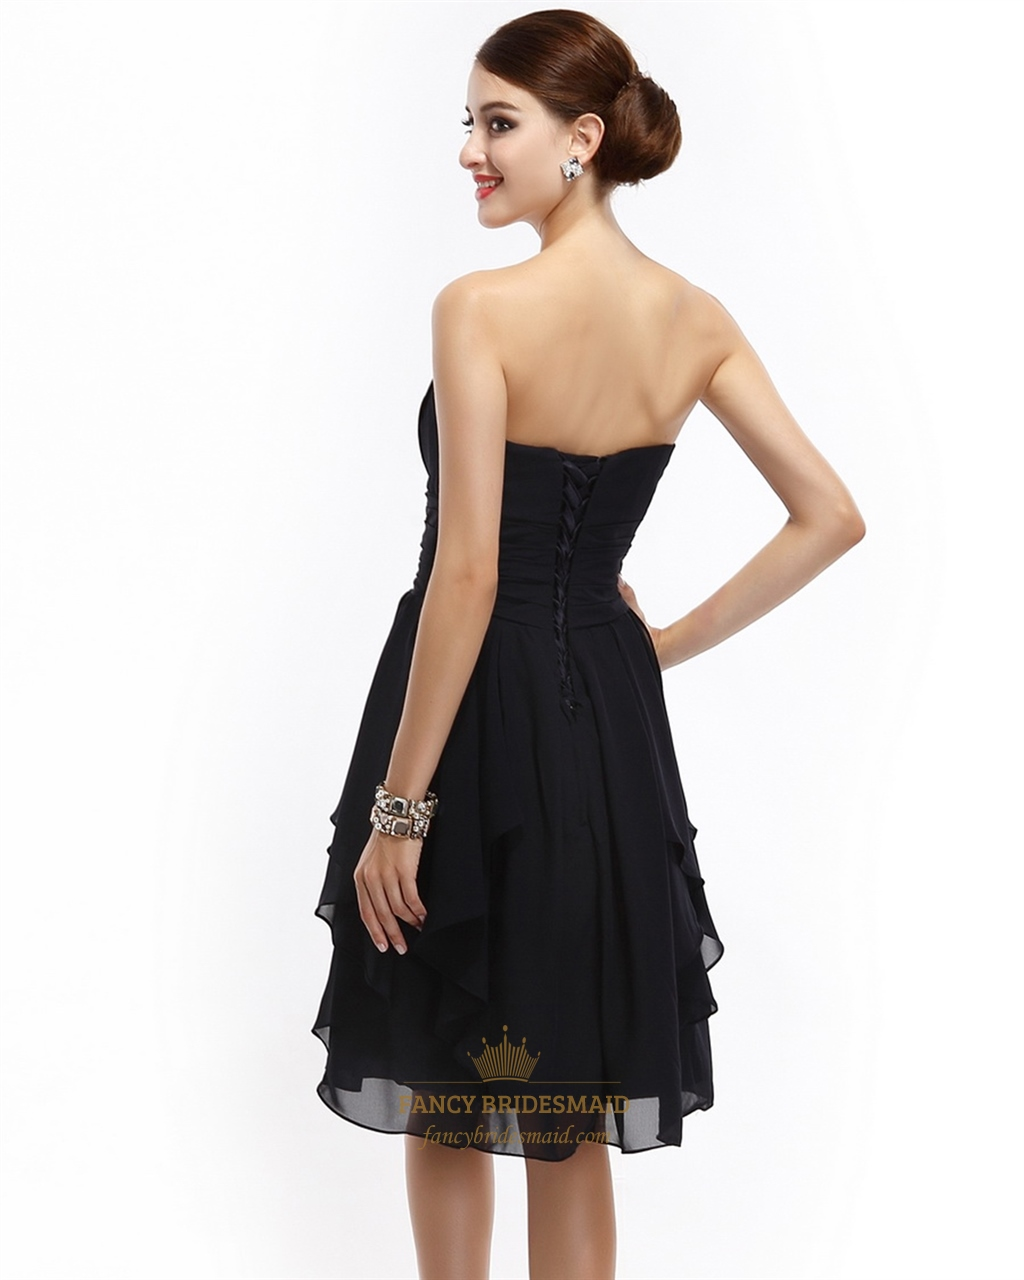 Short Black Strapless Chiffon Bridesmaid Dresses With